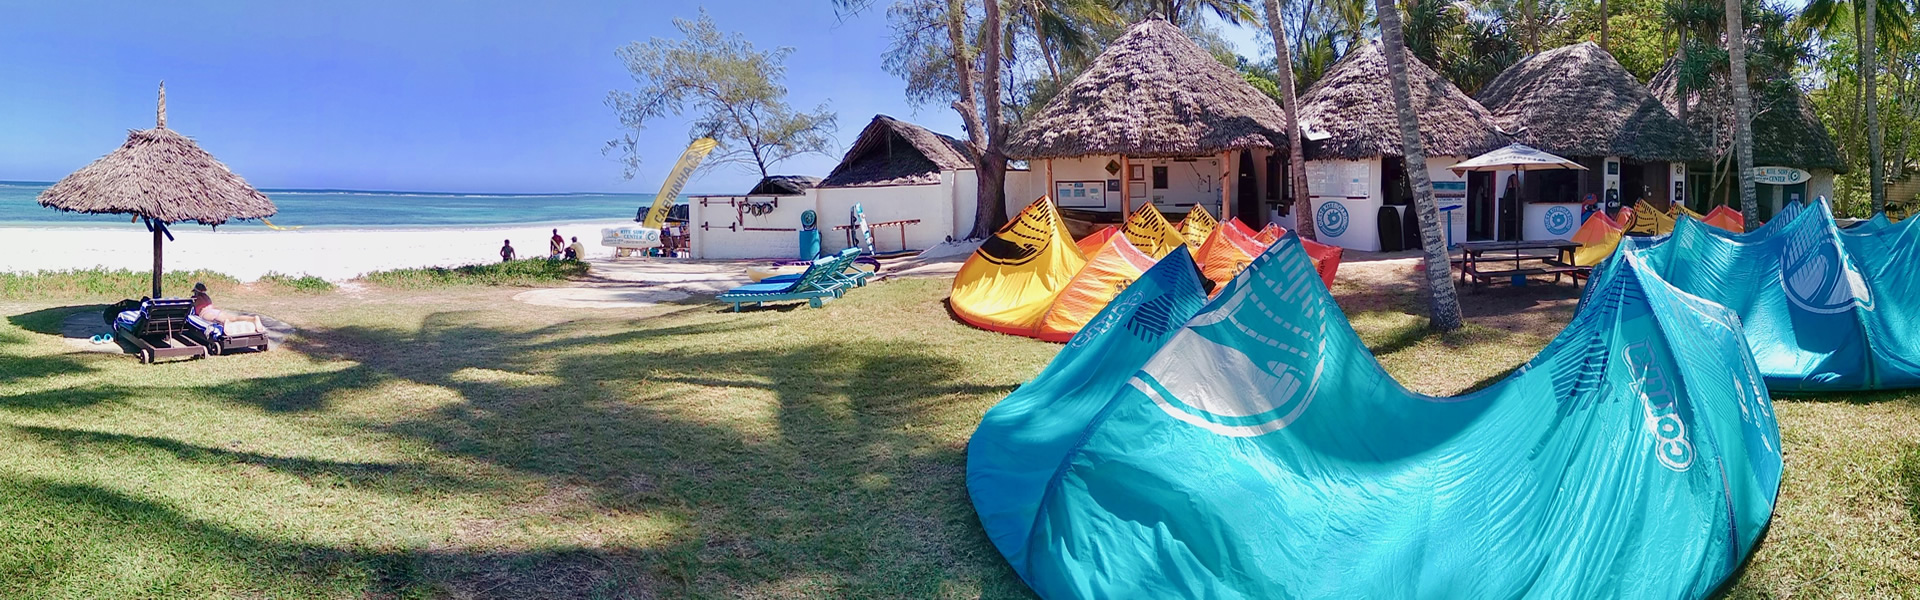 Quest Kiteboarding - IKO kitesurf school in Diani beach Kenya